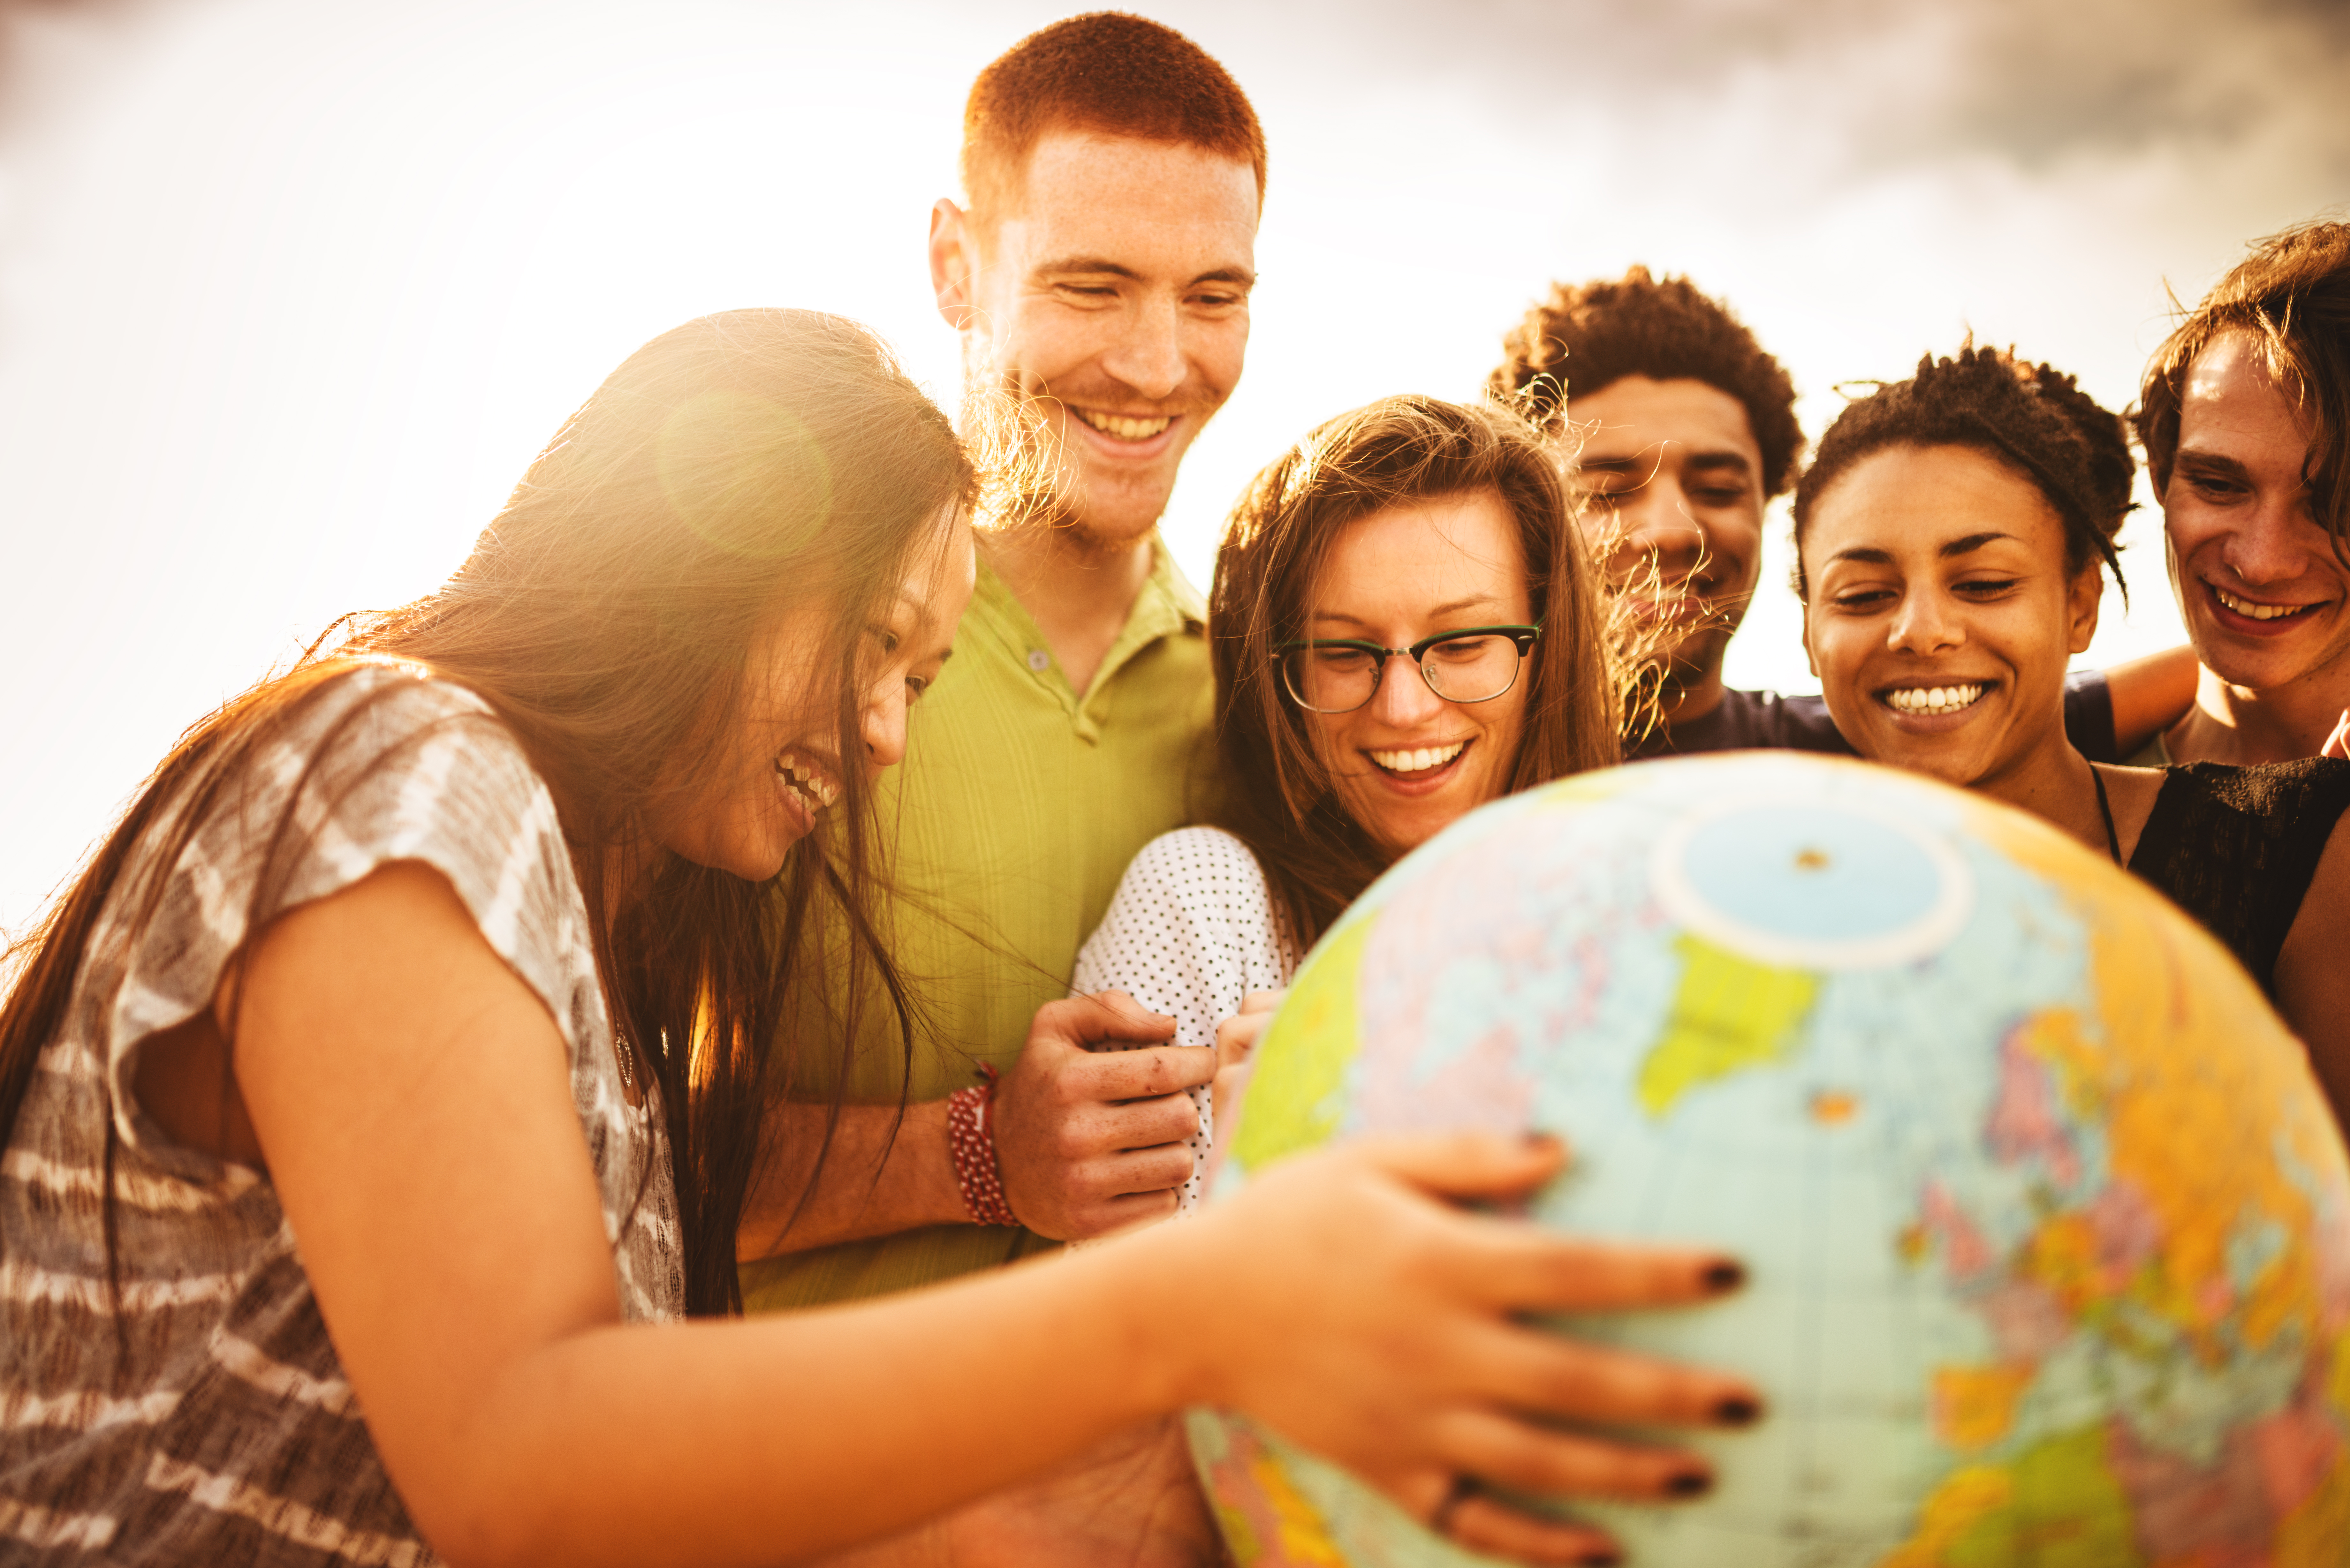 Millennials are looking for better travel experiences